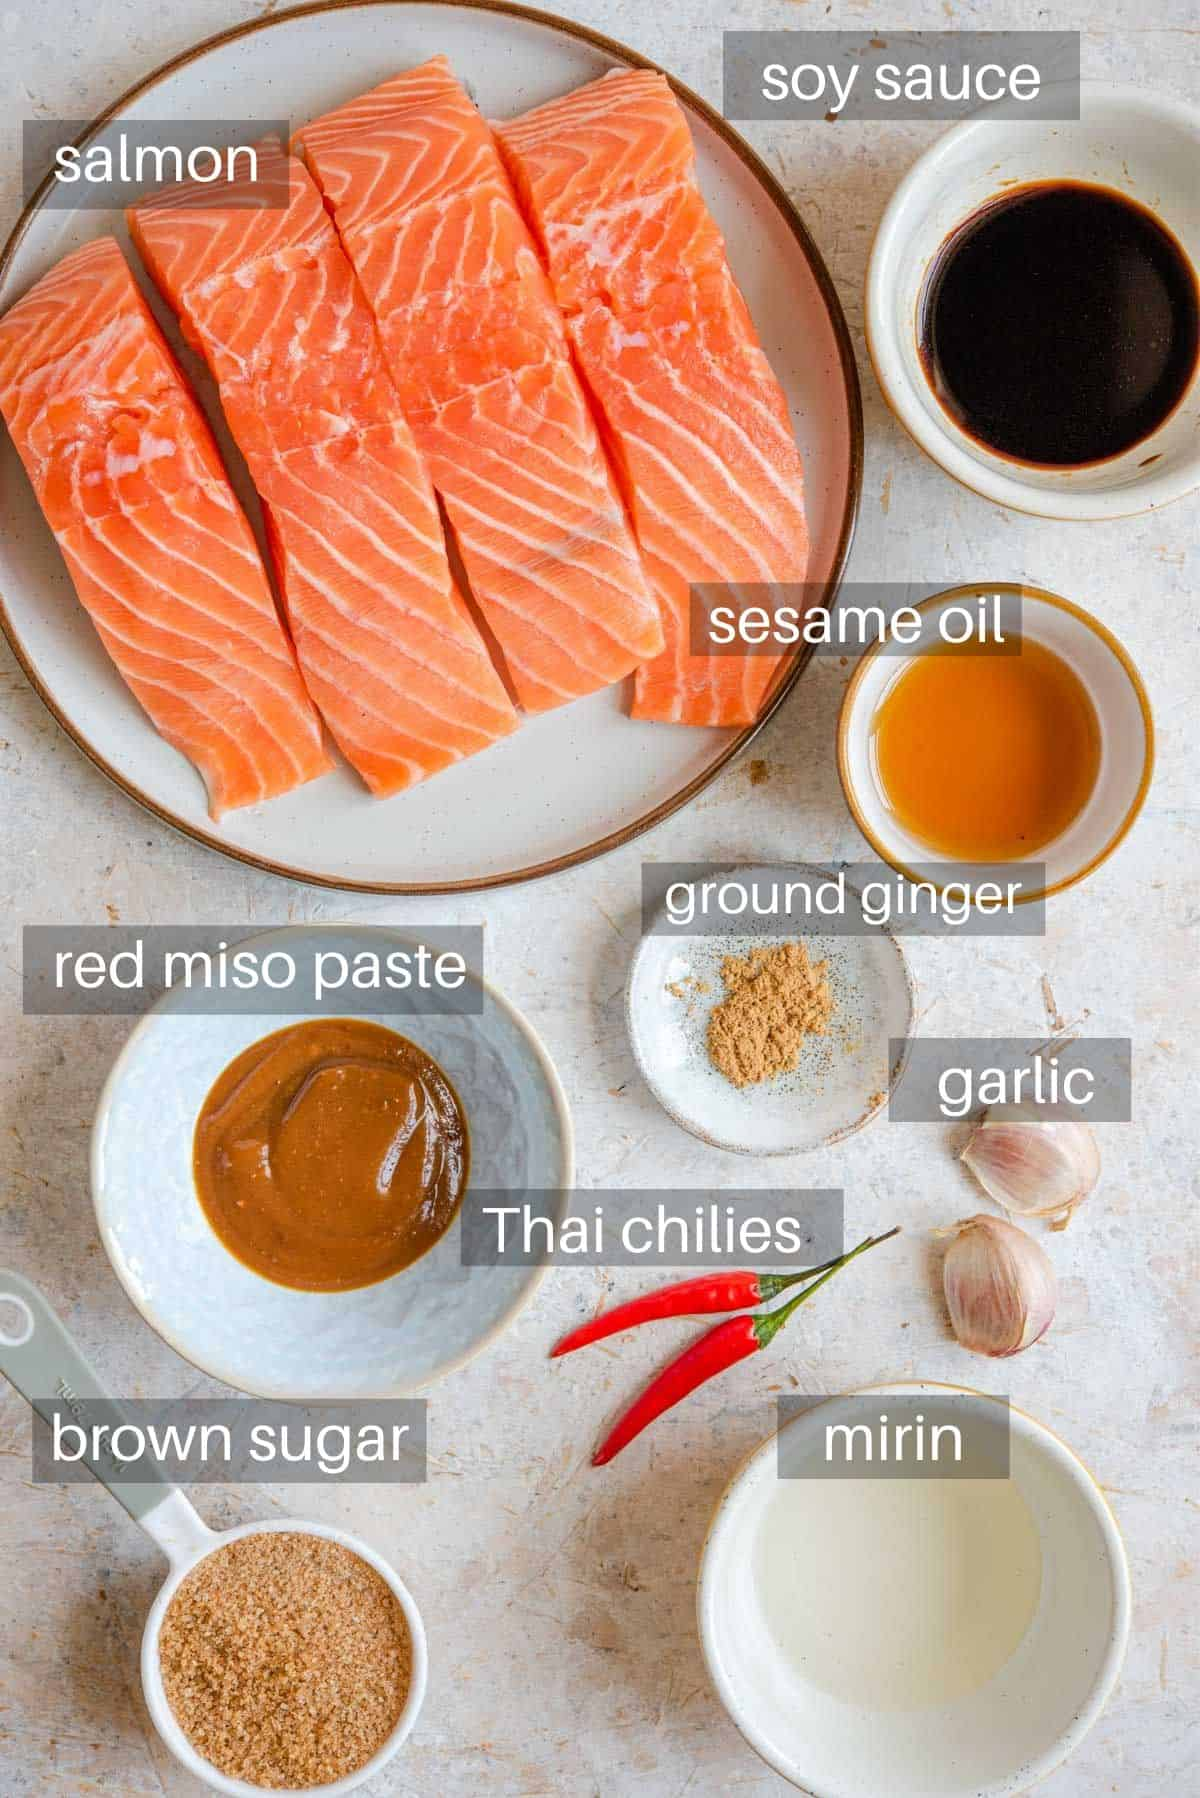 A photo showing all the ingredients you need to make glazed salmon